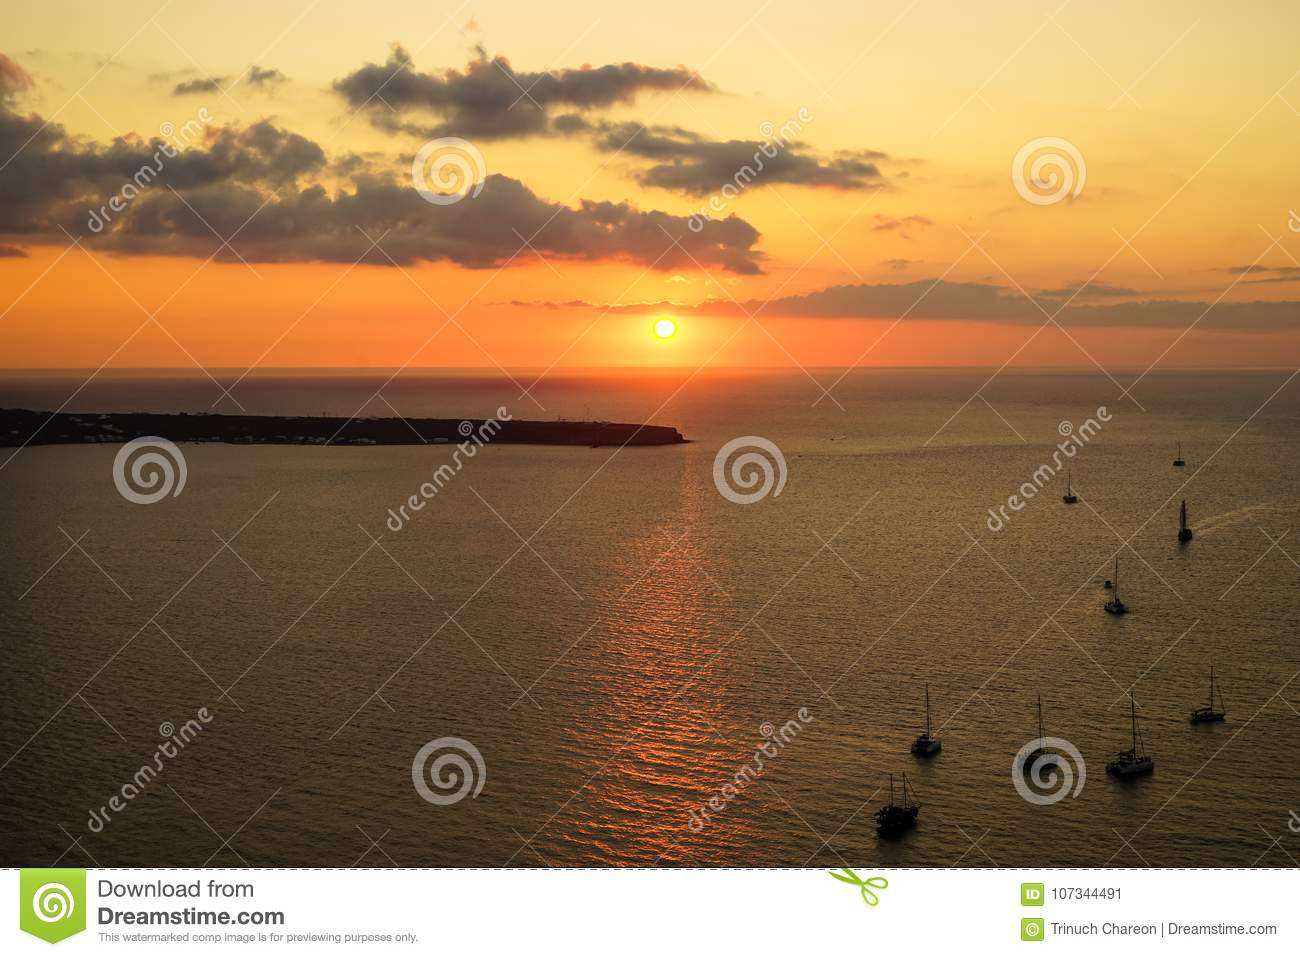 Romantic sunset scenic ocean view in vast Aegean sea with sailing ships silhouette, abstract cloud and light reflection